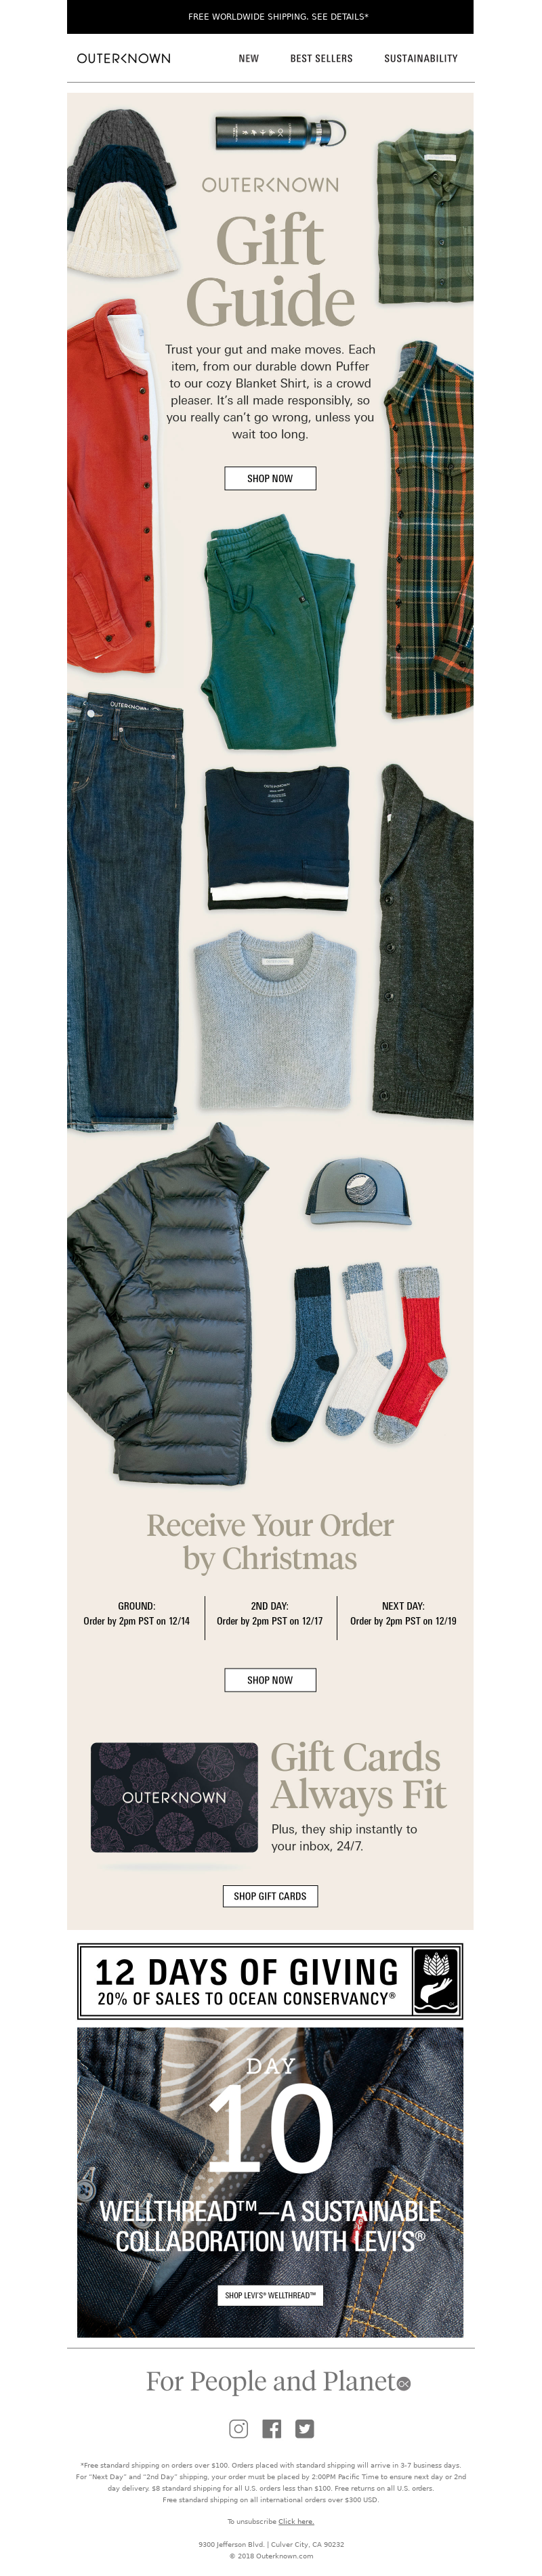 Gift guide email newsletter from Outerknown